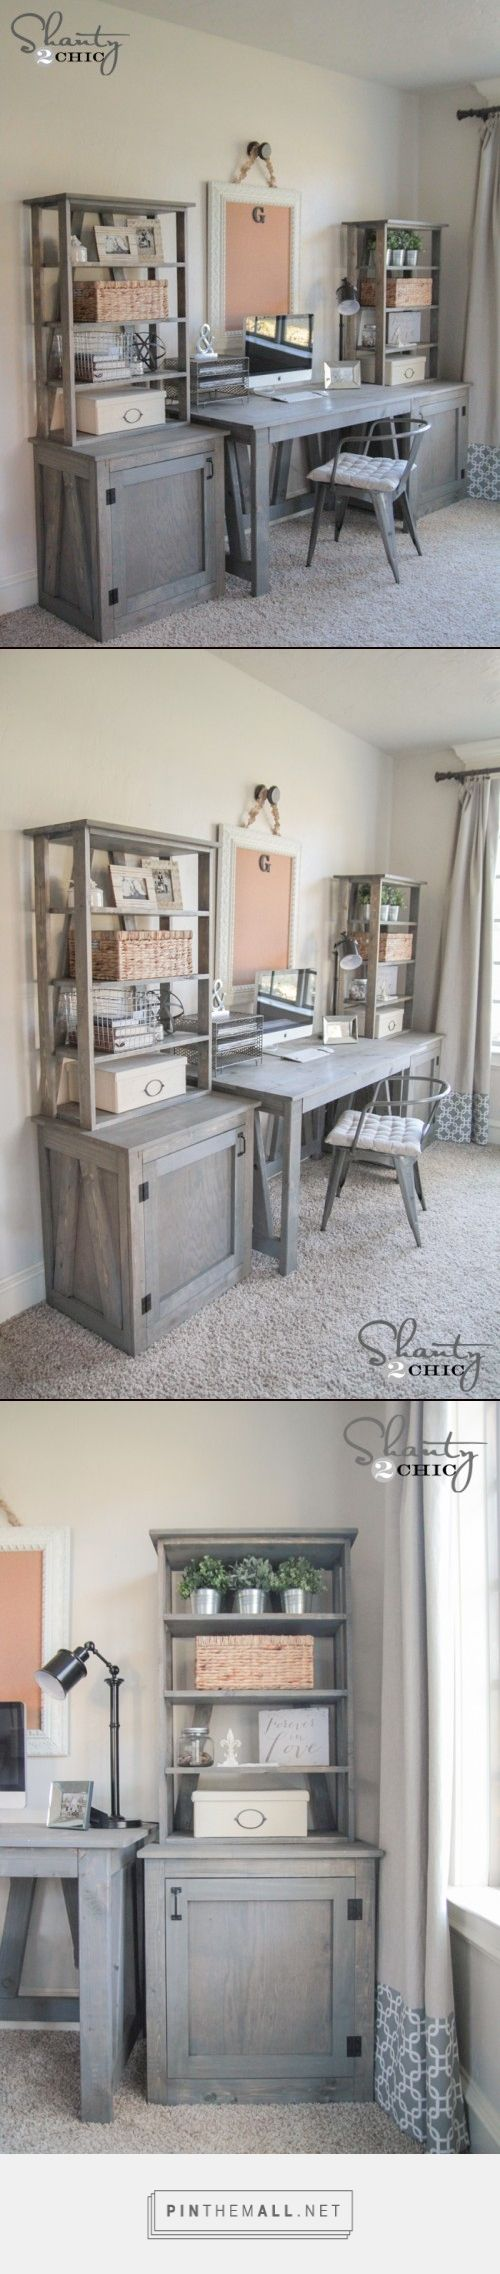 DIY Desk System! Completely customizable! Free woodworking plans and tutorial at www.shanty-2-chic